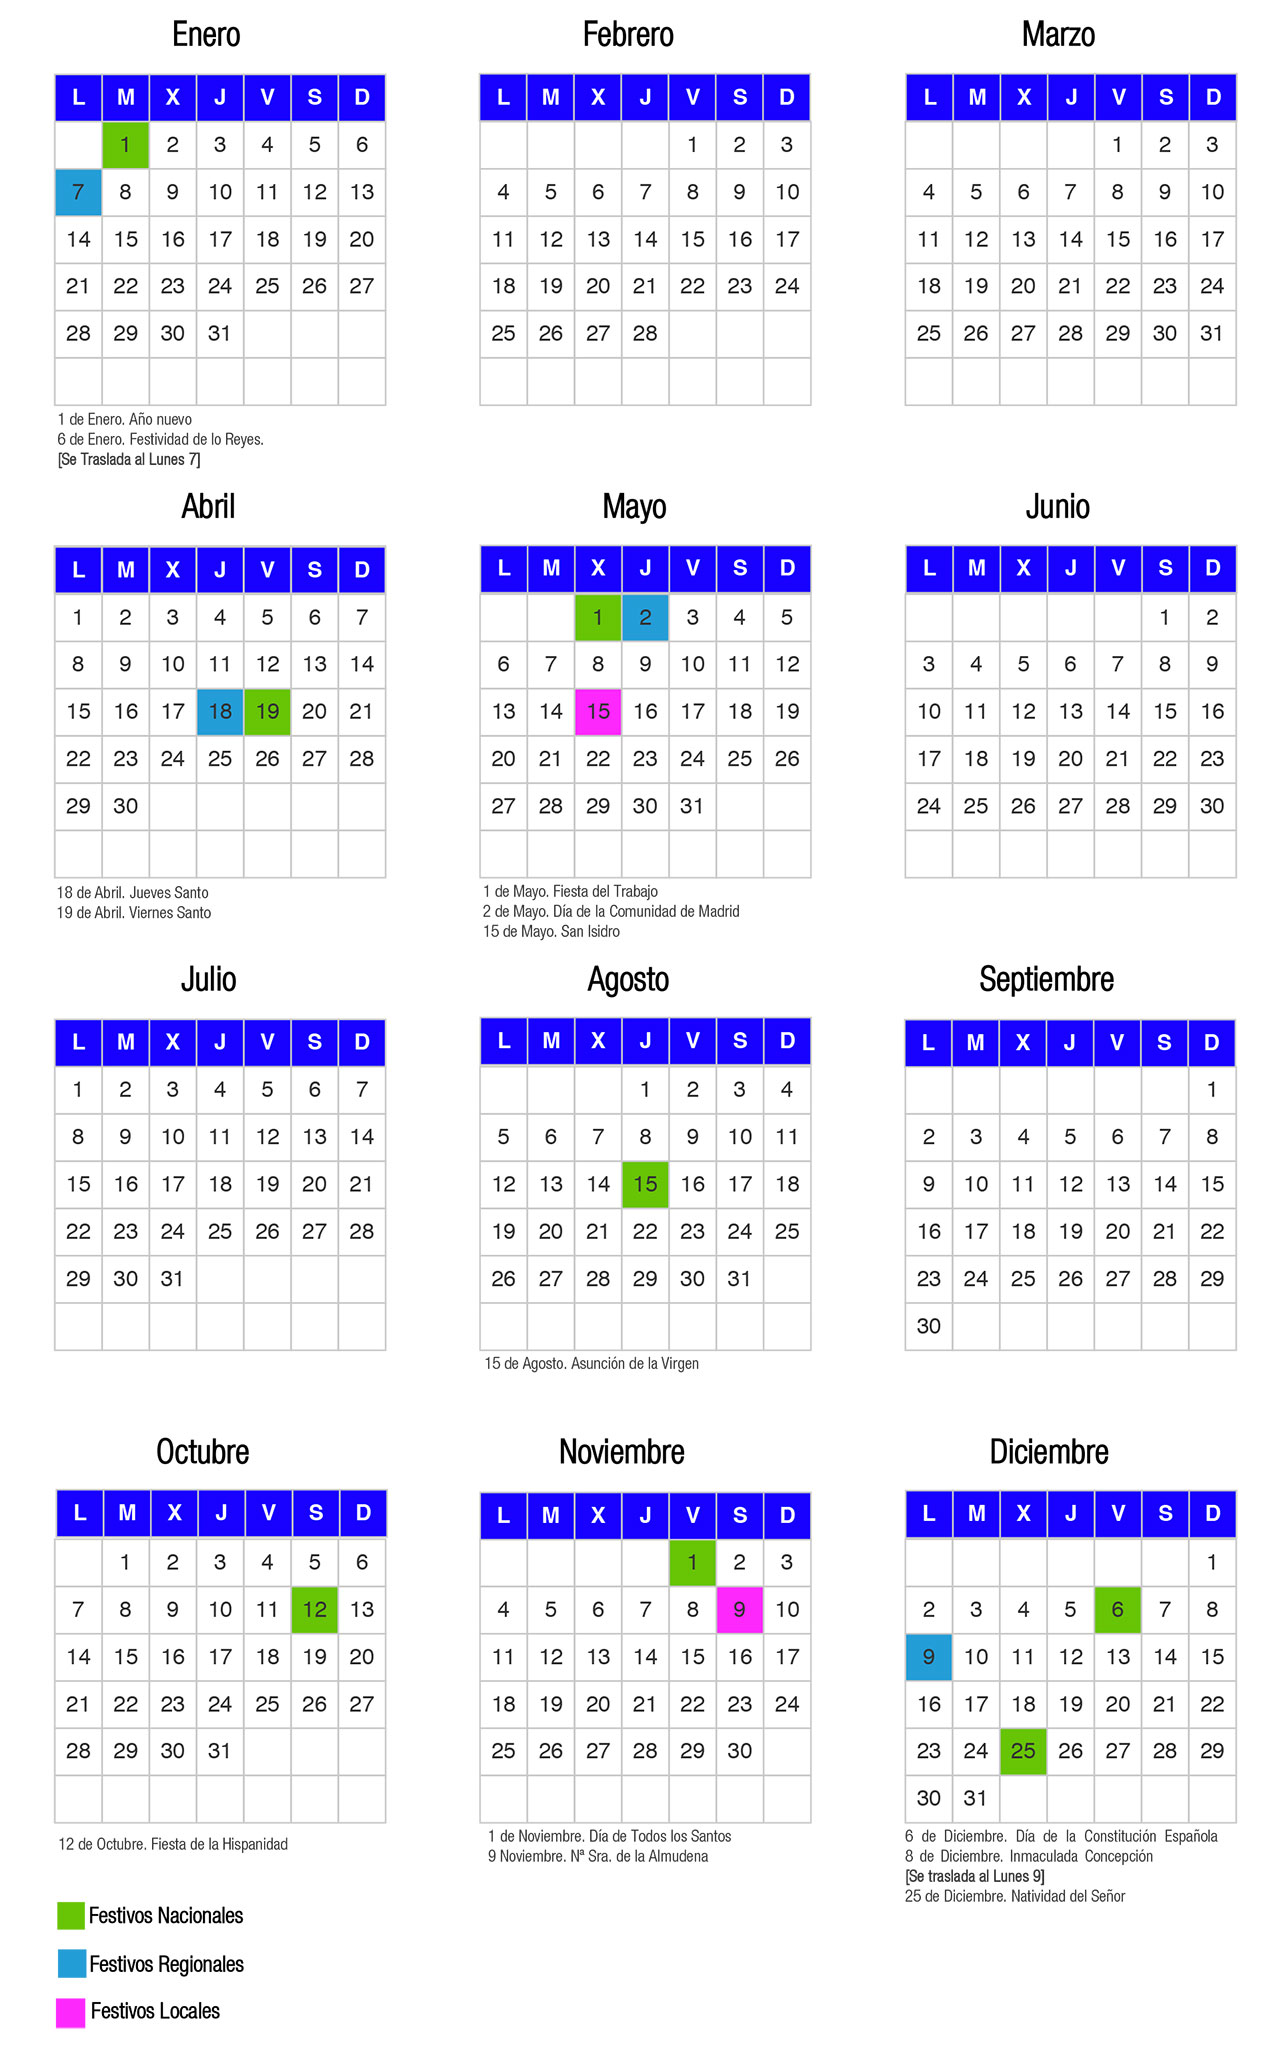 Calendario Laboral Comunidad De Madrid.Calendario Laboral 2019 Asesoria Ficobe